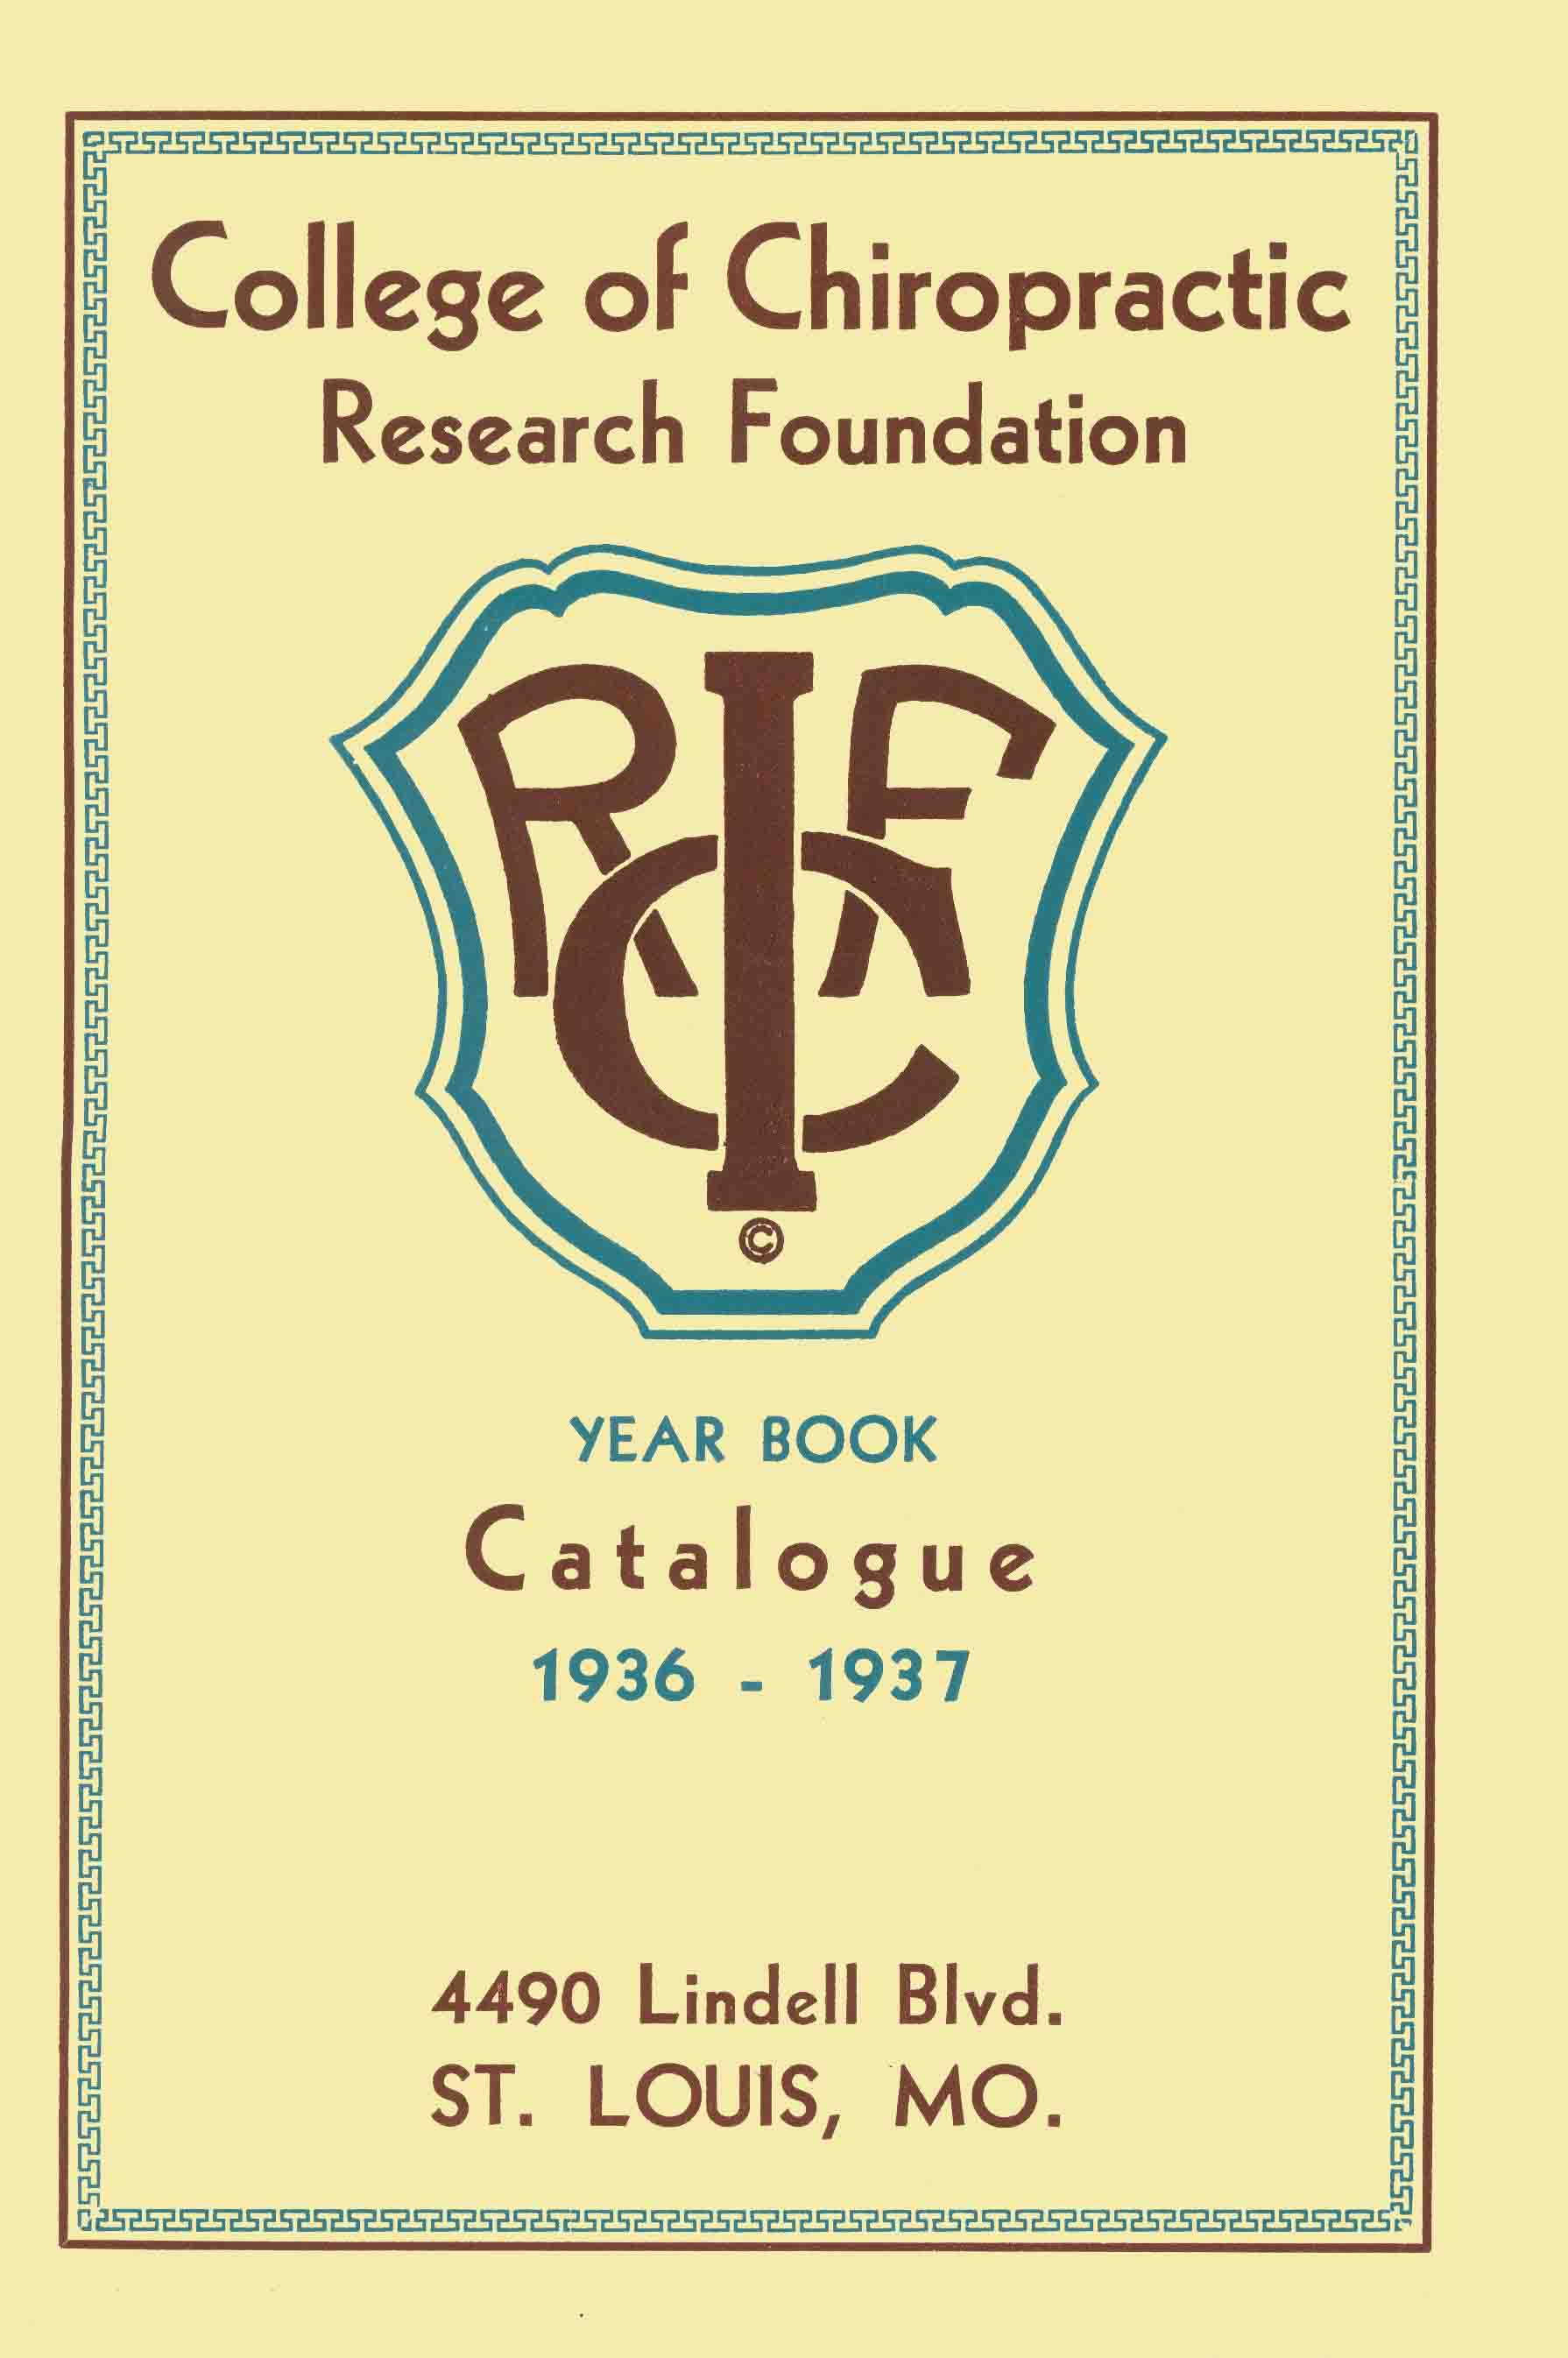 ICRF 1936-1937 Catalog Cover